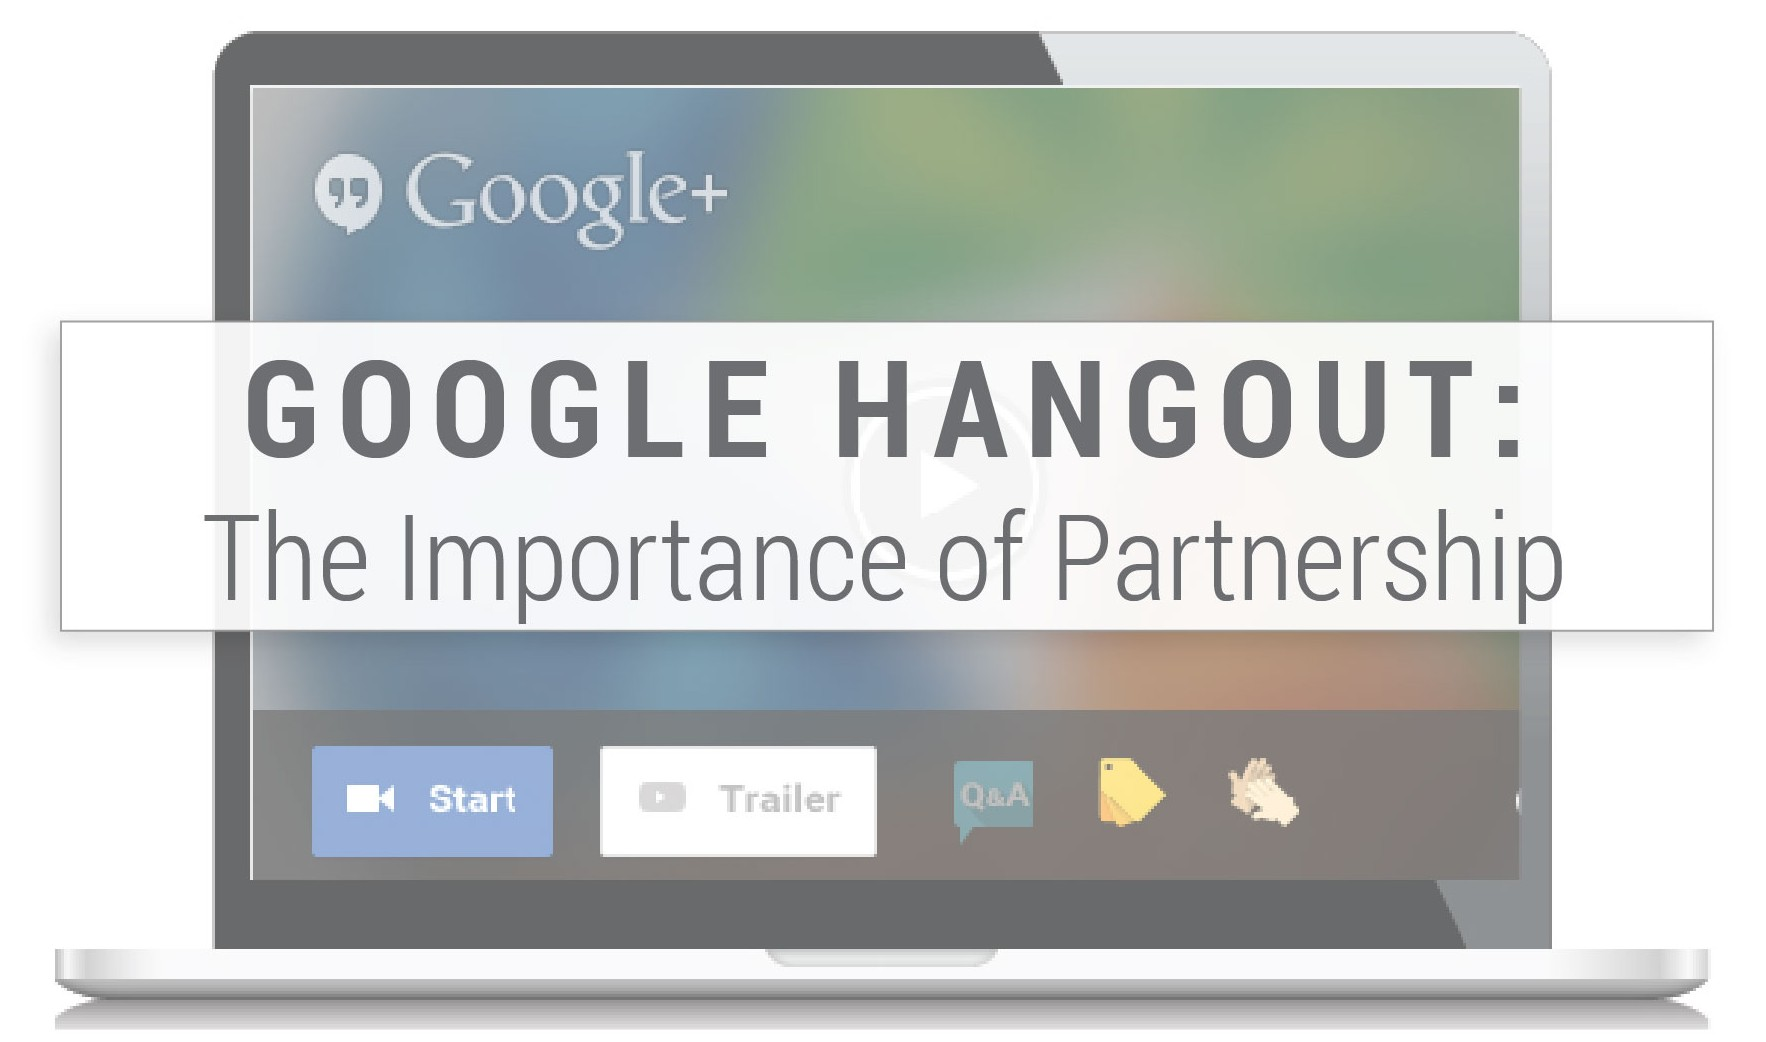 Google Hangout Partnership Invite 2015 03 14 - The Center